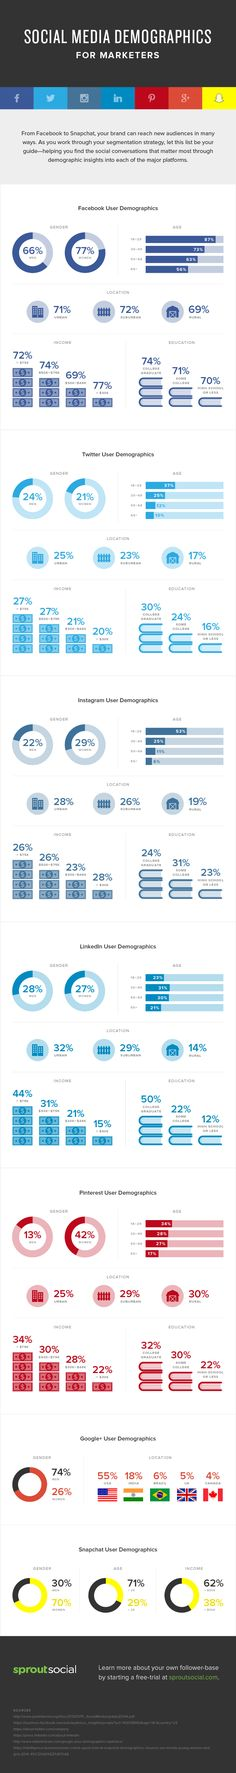 http://social-media-strategy-template.blogspot.com/ Facebook, Twitter, GooglePlus, Instagram, LinkedIn, Pinterest and Snapchat - #SocialMedia Demographics for Marketers - #infographic